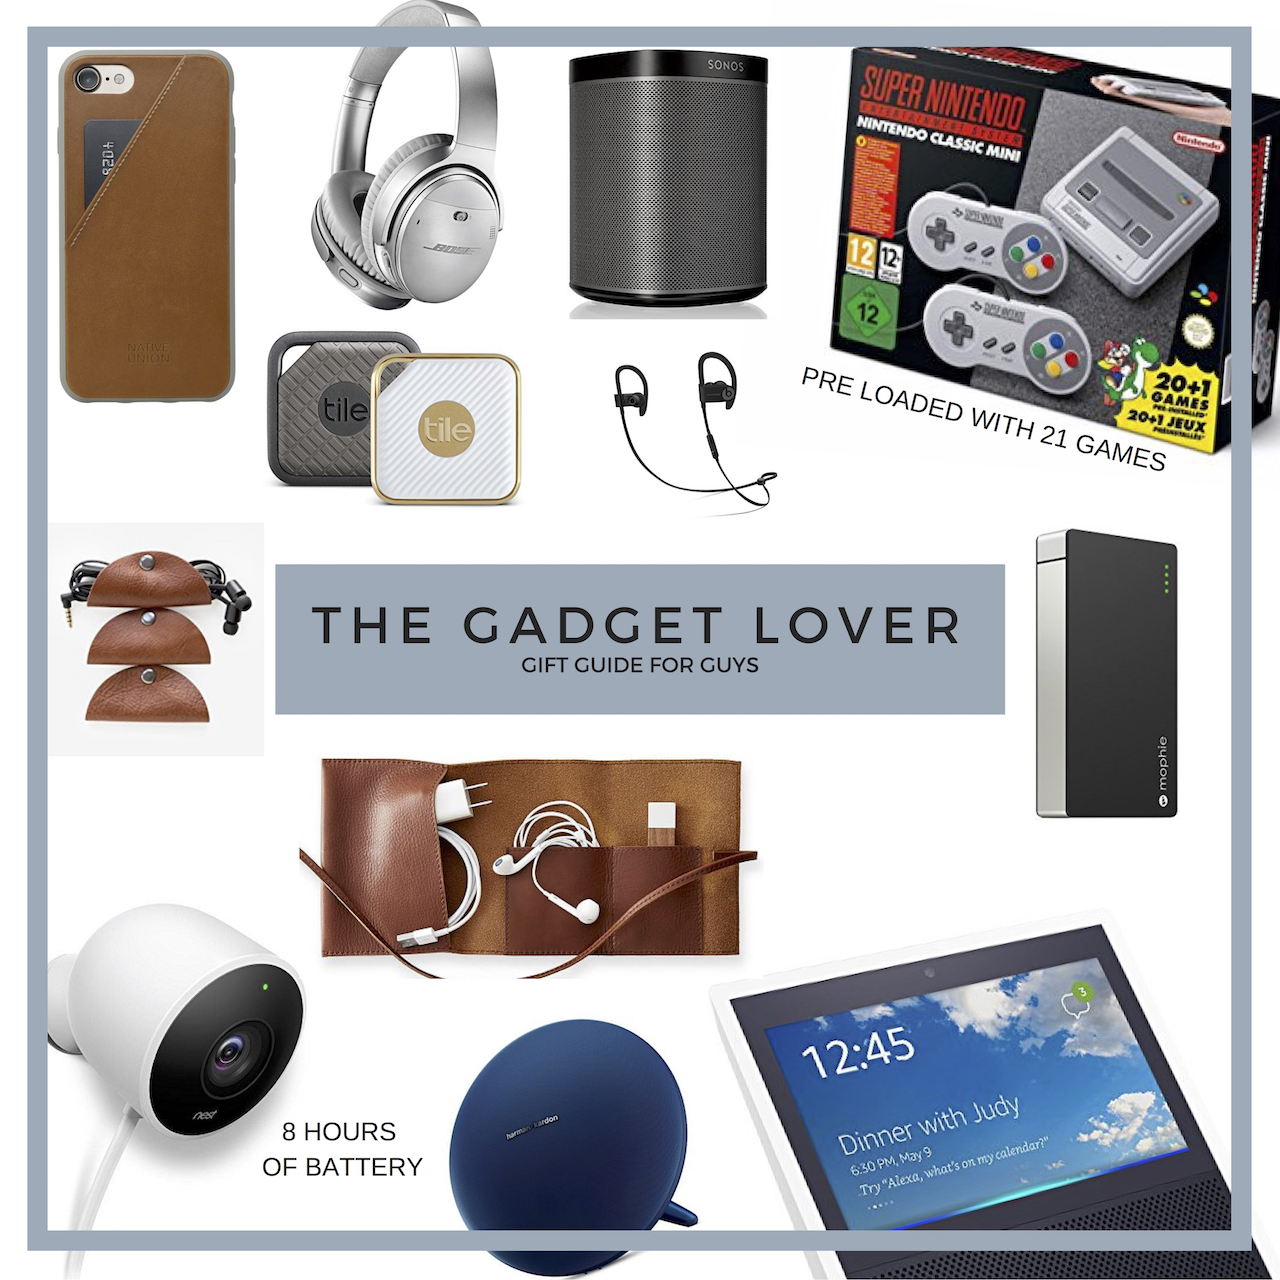 The Gadget Lover